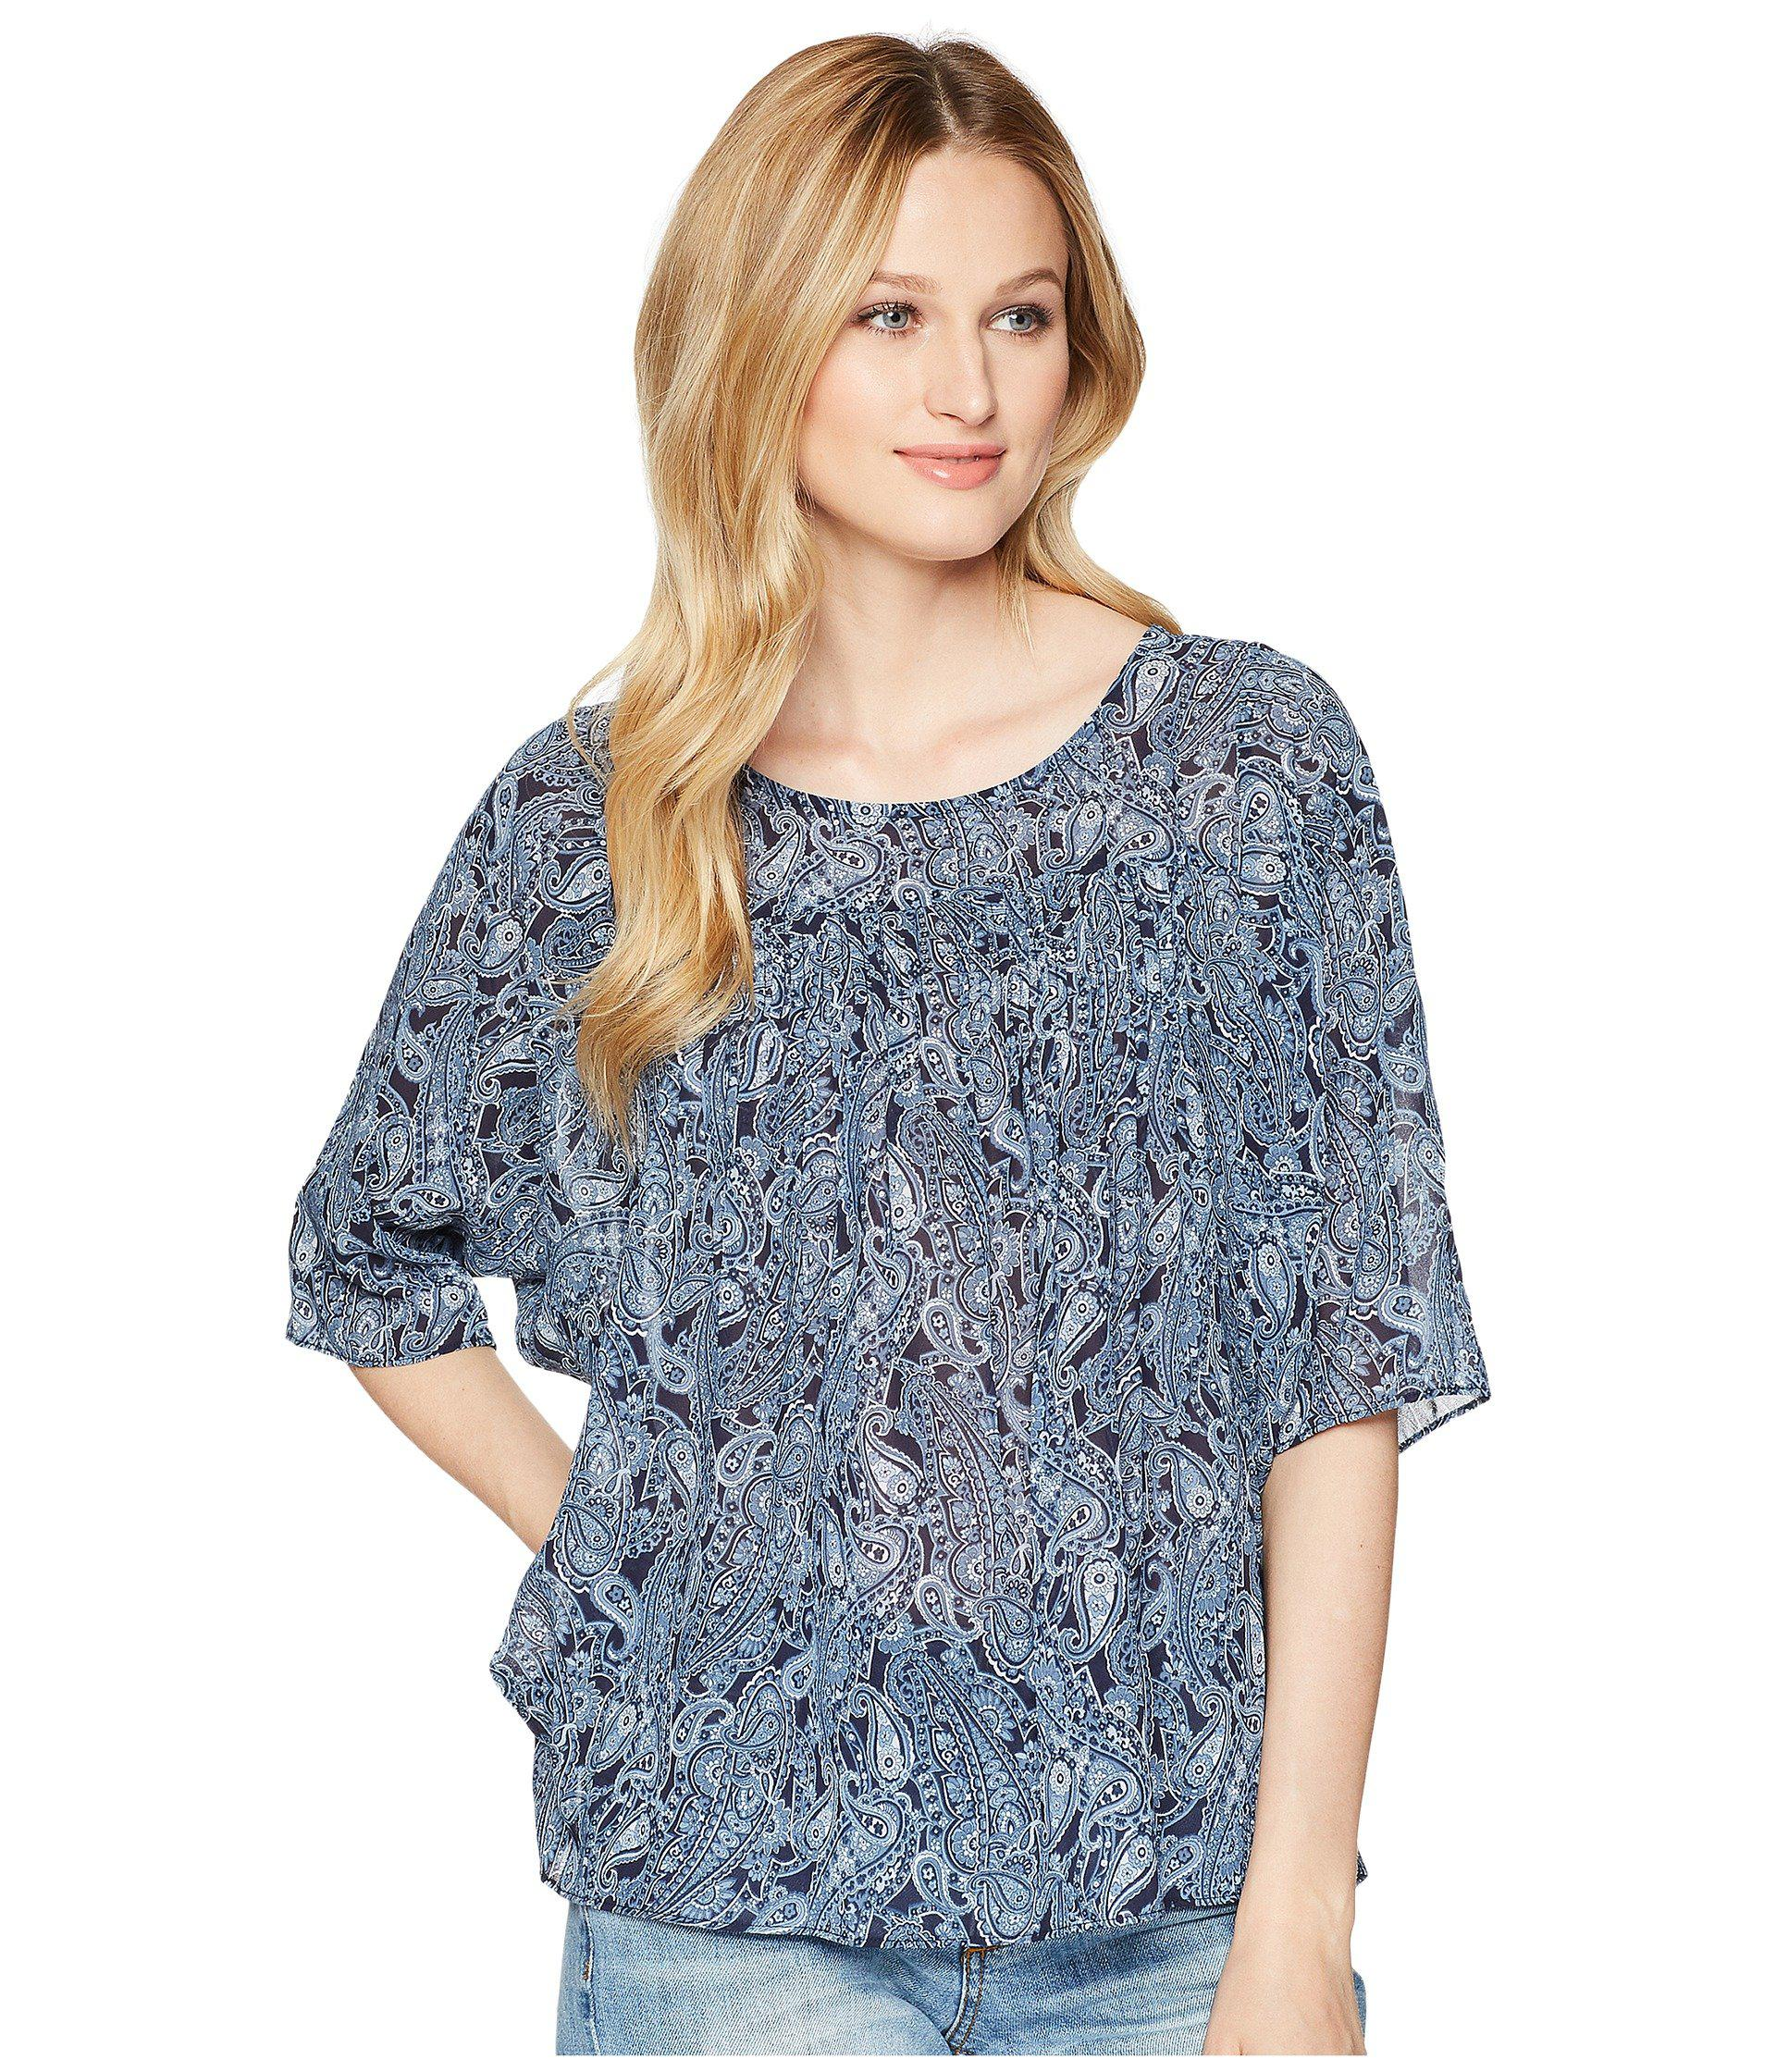 f9e3975675004 Lyst - MICHAEL Michael Kors Paisley Paradise Top in Blue - Save 57%